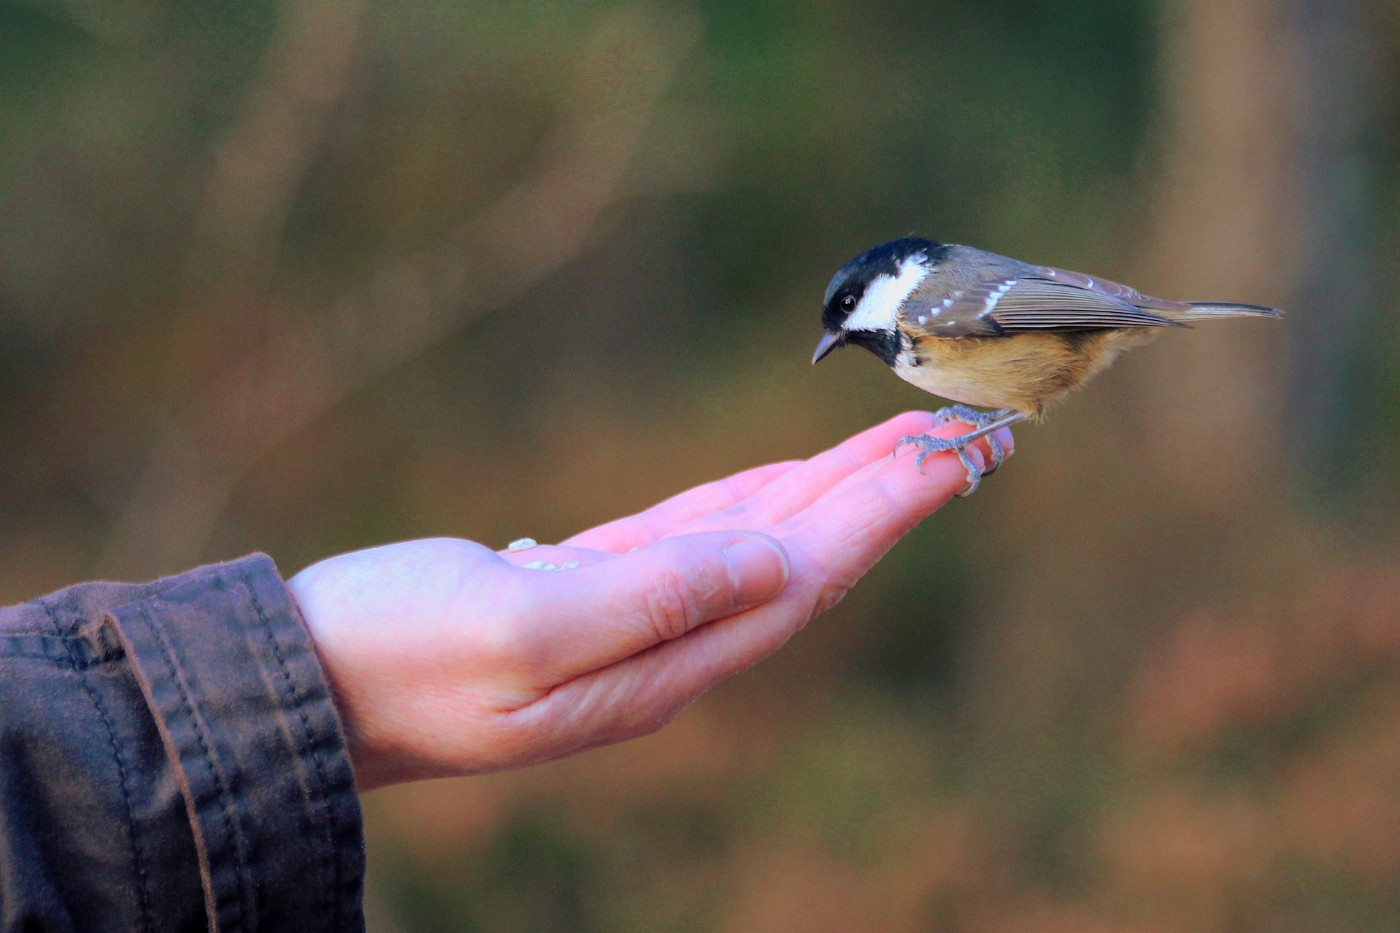 Hand with a bird perched on the fingertips